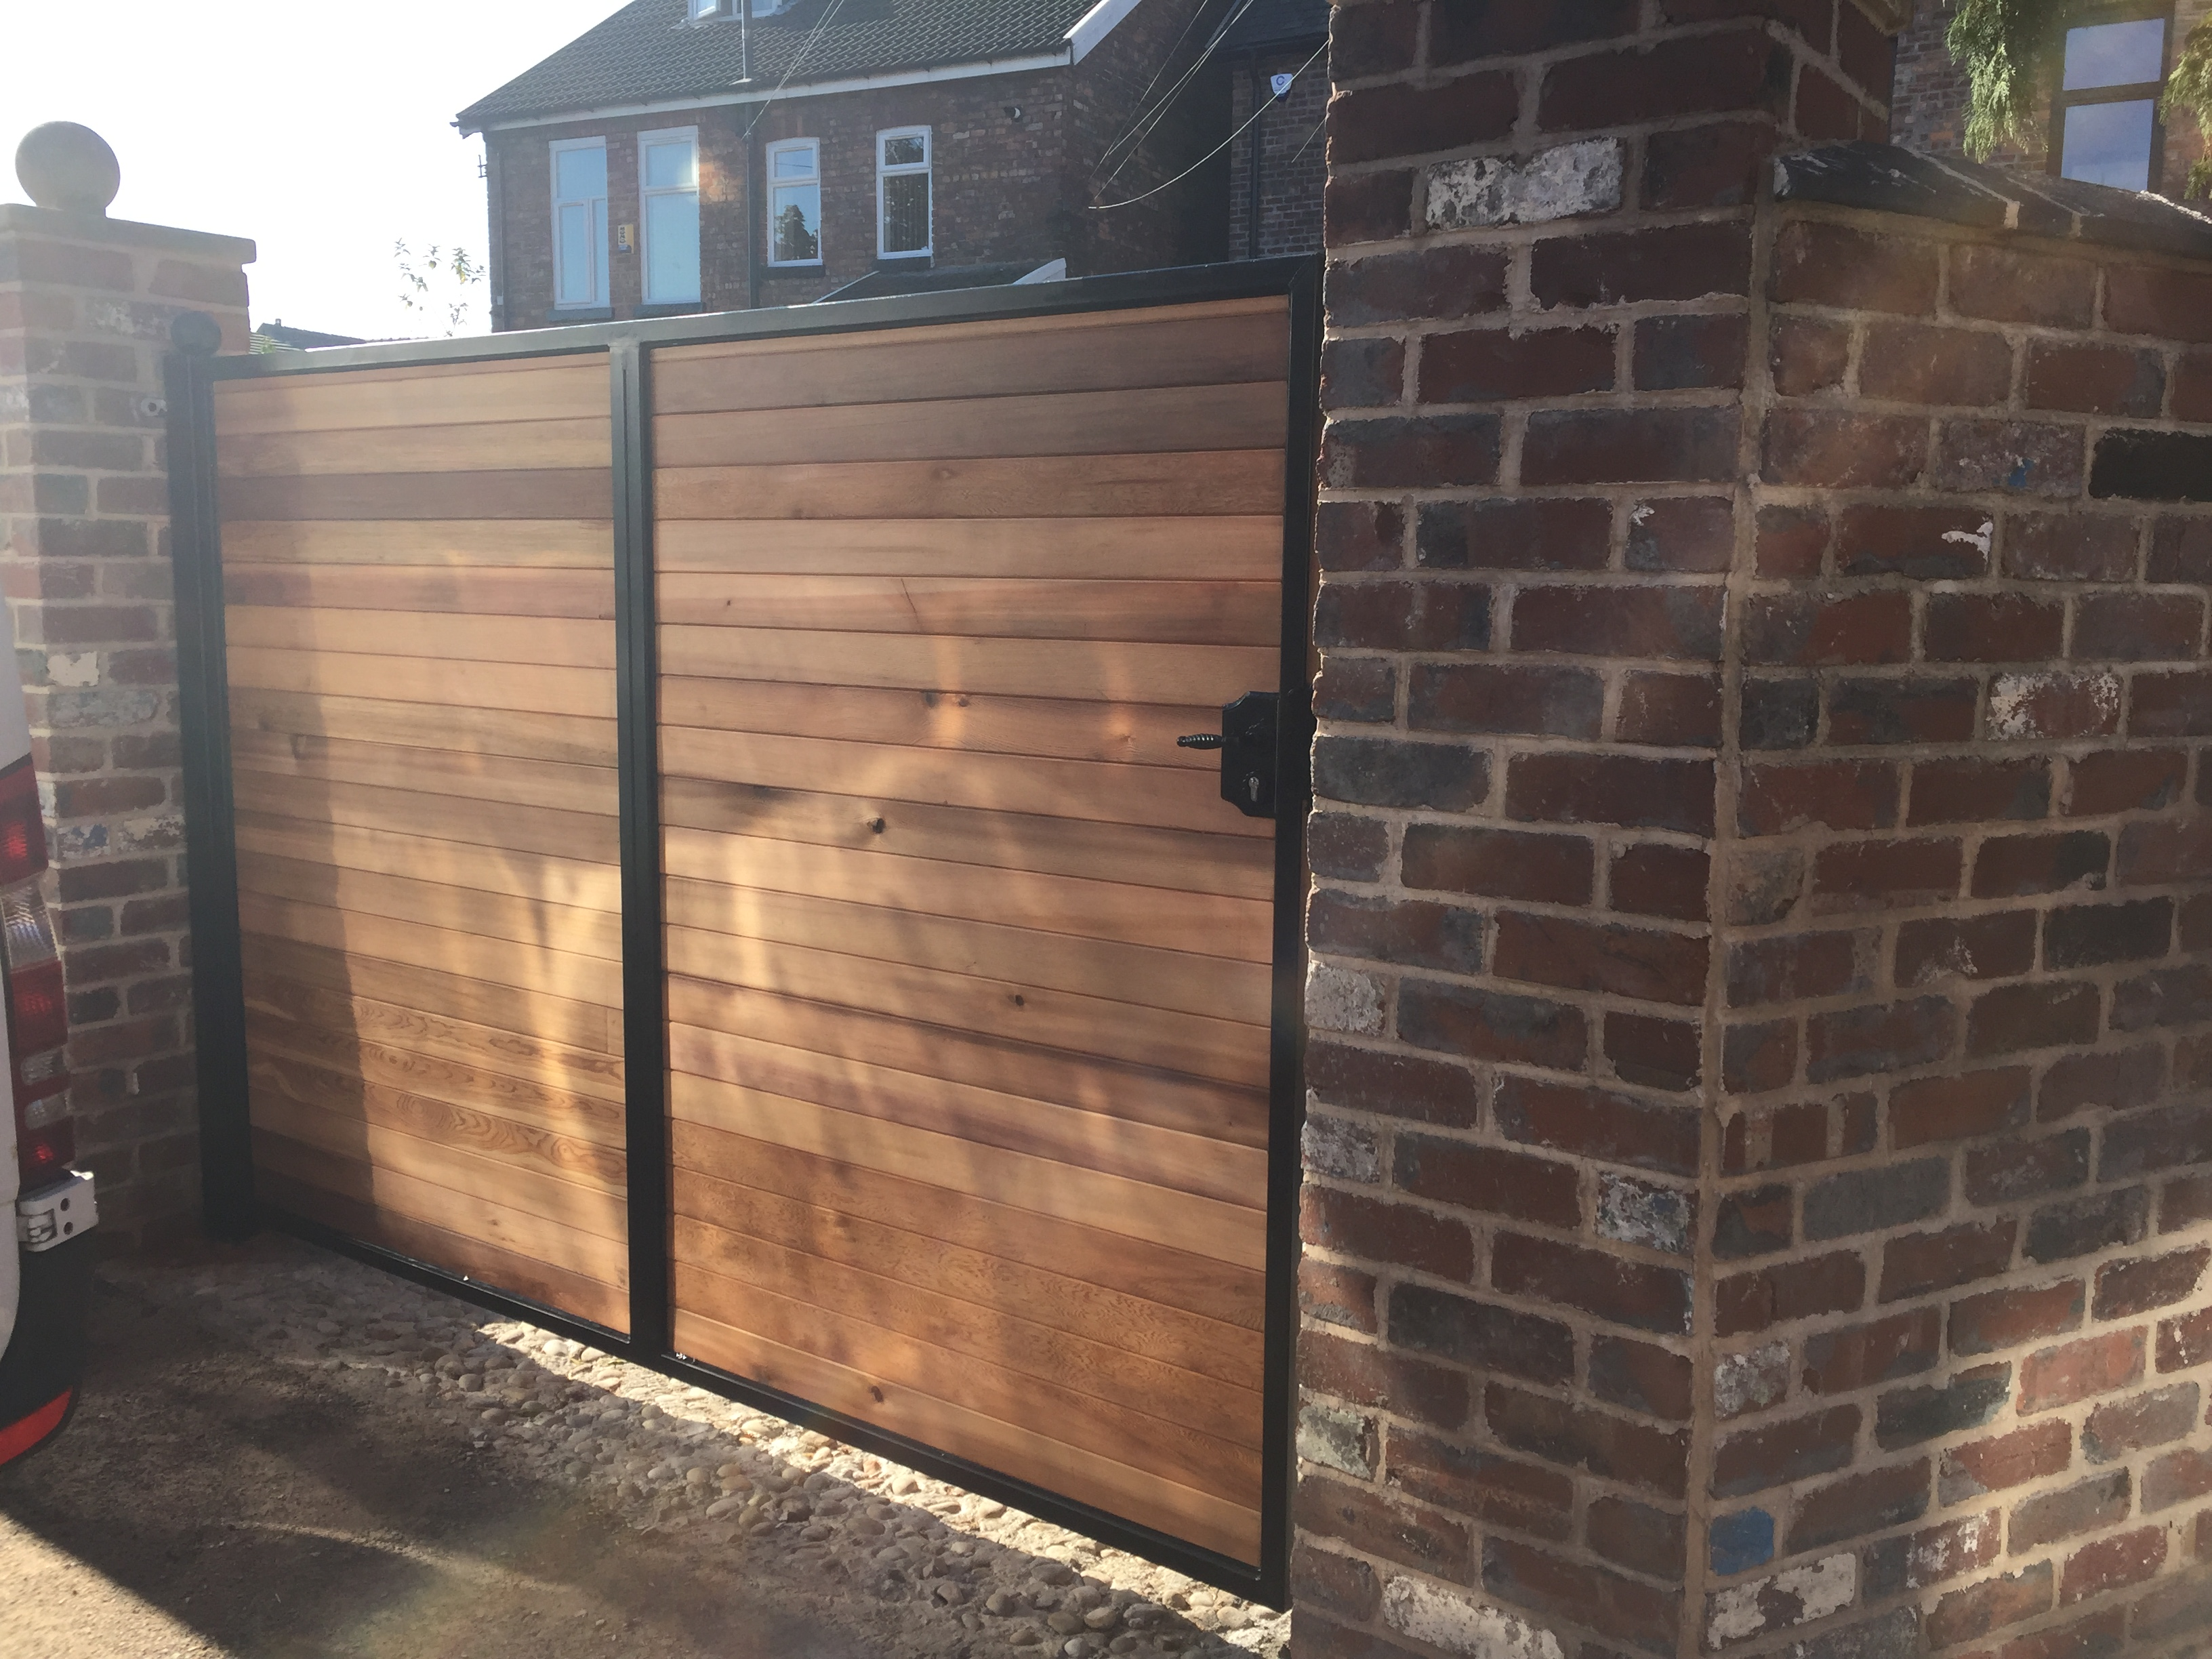 3 Causes of Wooden Gate Rot